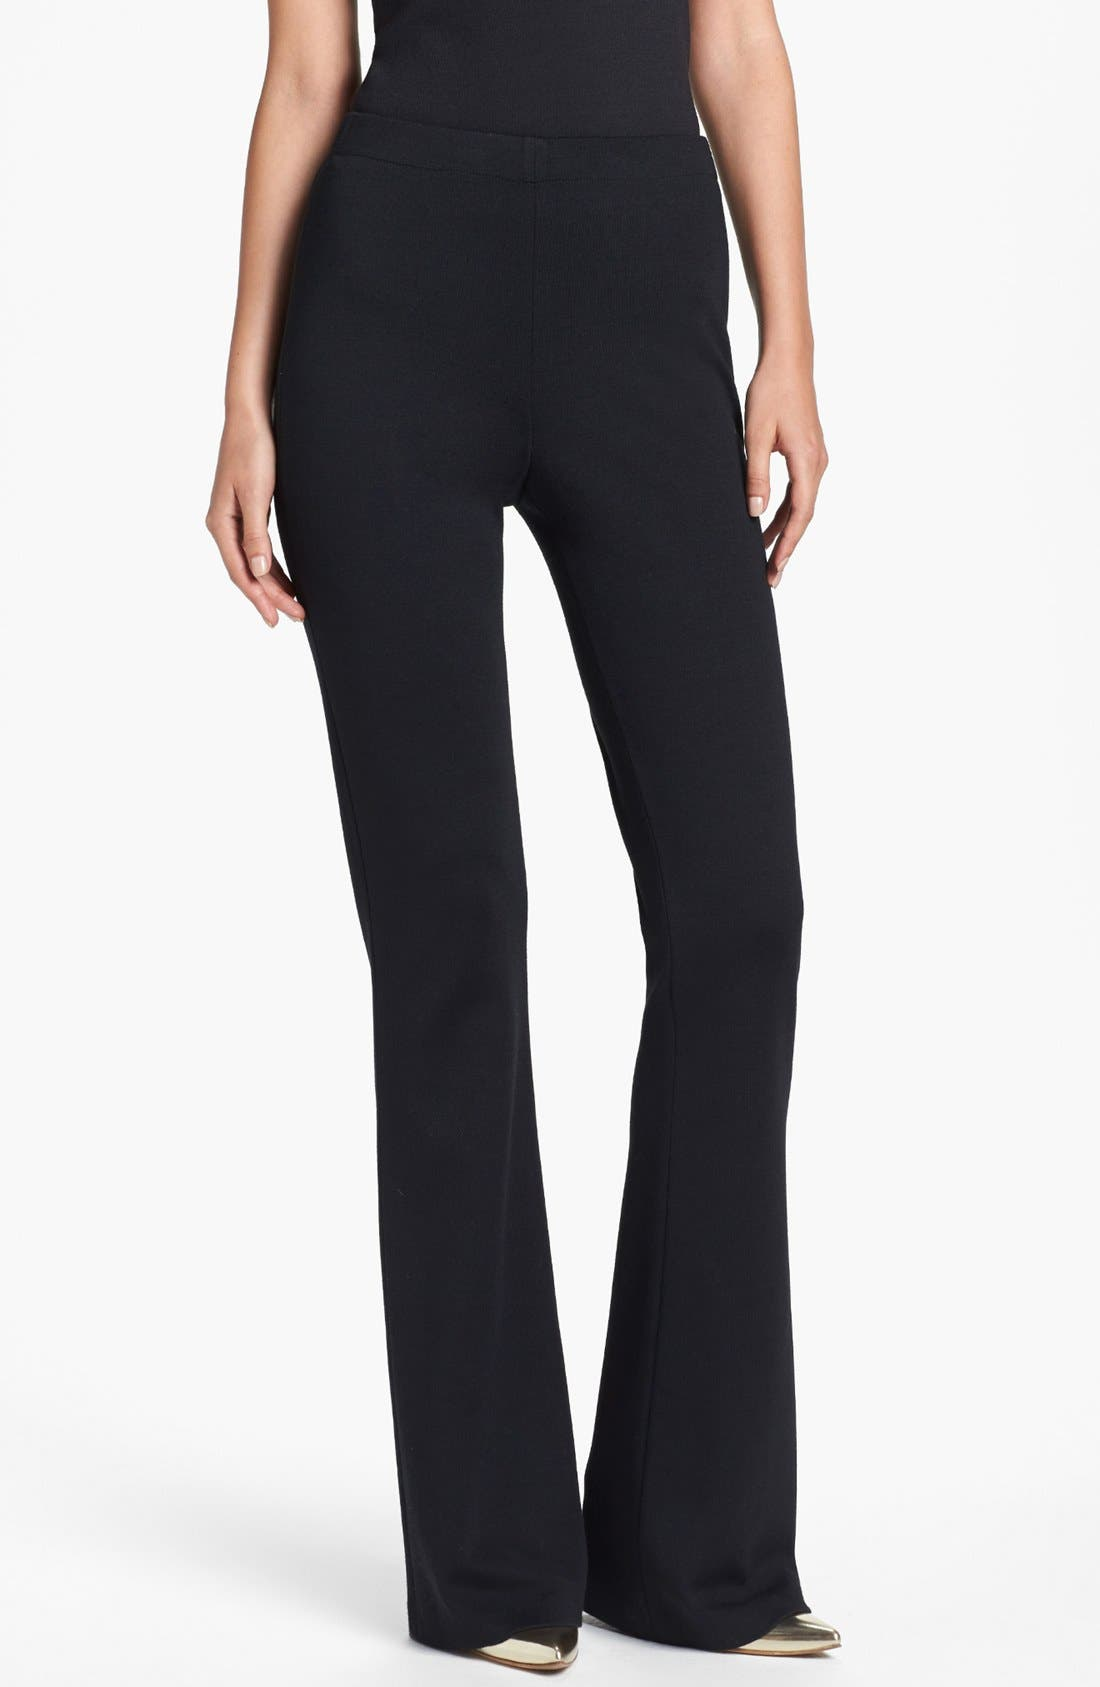 ST. JOHN COLLECTION 'Kasia' Bootcut Milano Knit Pants, Main, color, CAVIAR